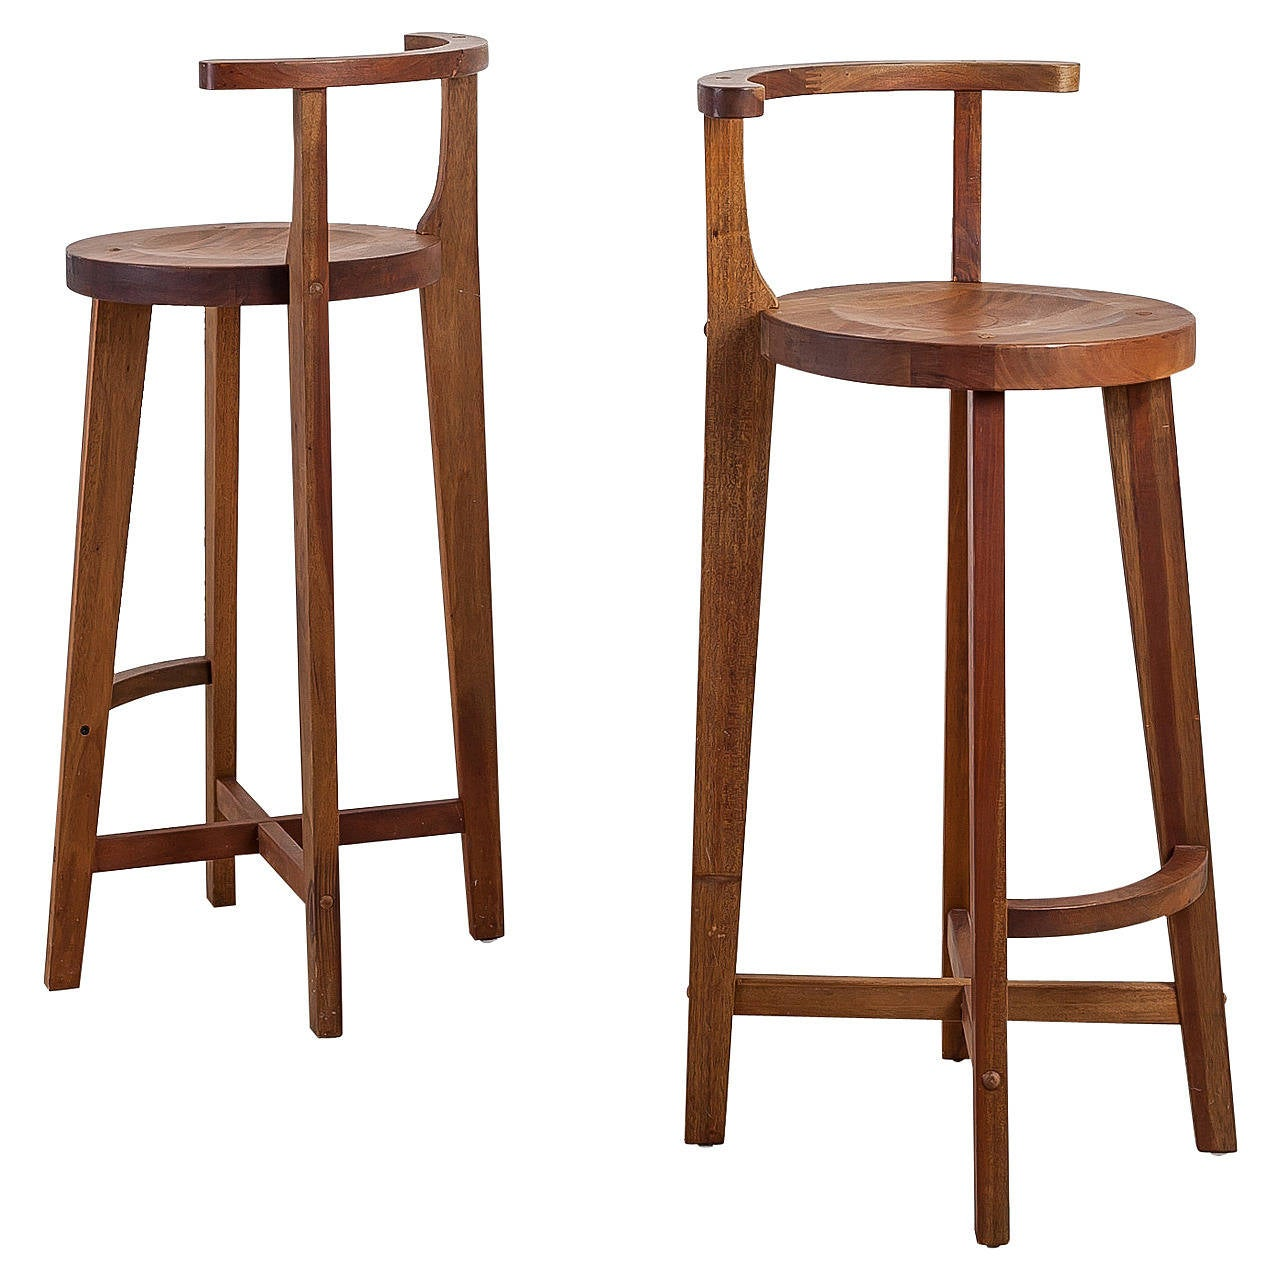 Pair Studio crafted wooden bar stools with rounded back rests 1  sc 1 st  1stDibs : wooden bar stool with back - islam-shia.org